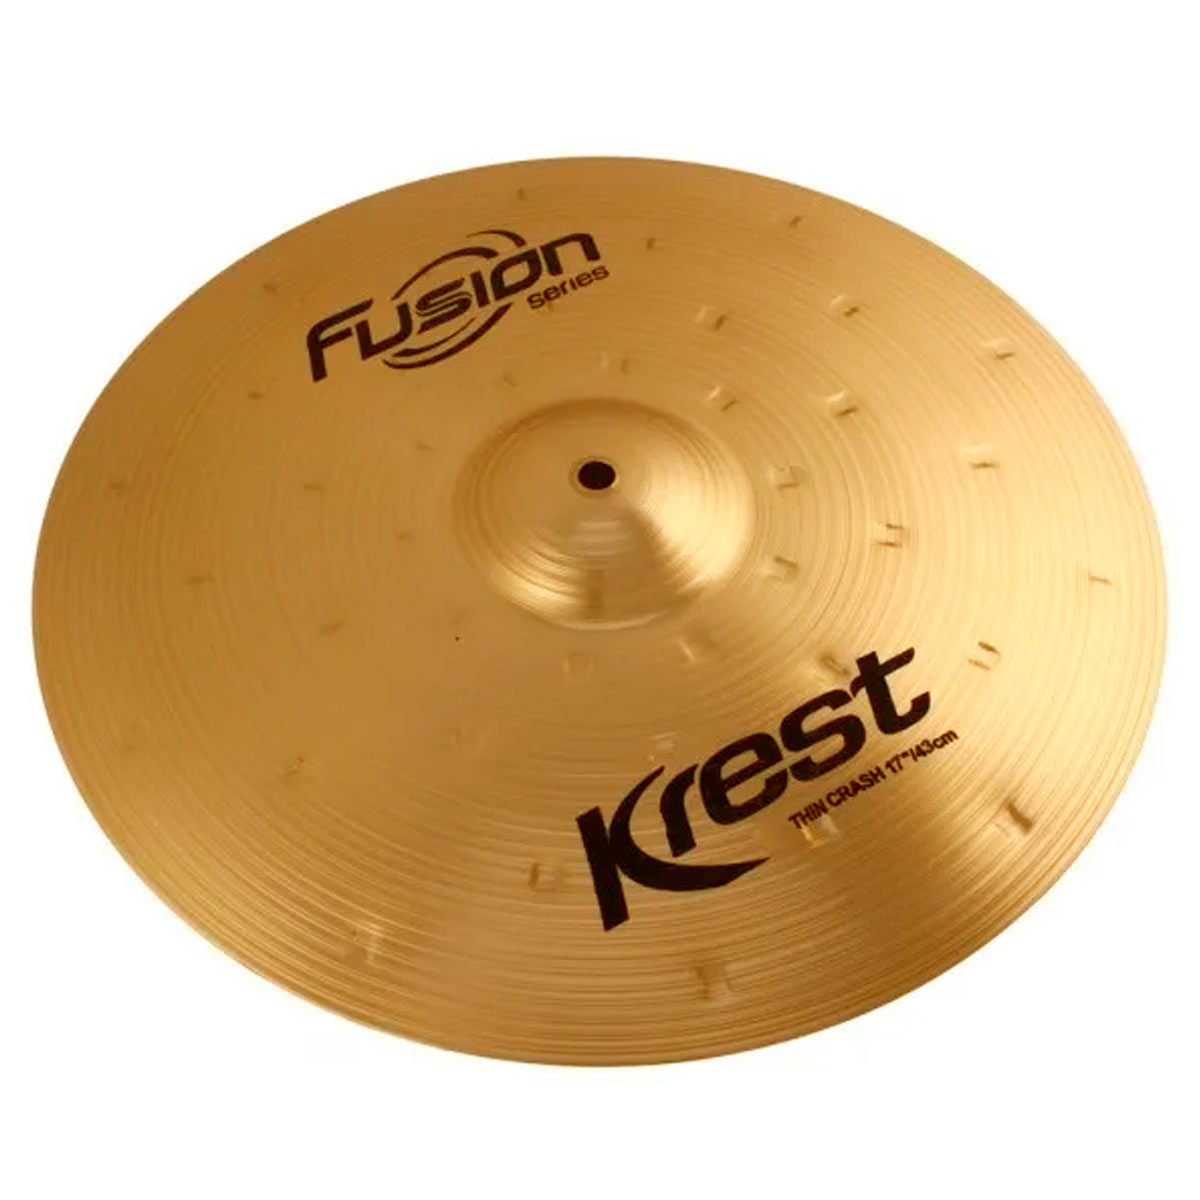 Prato Thin Crash Fusion Series 17' Krest Cymbals (Ataque)